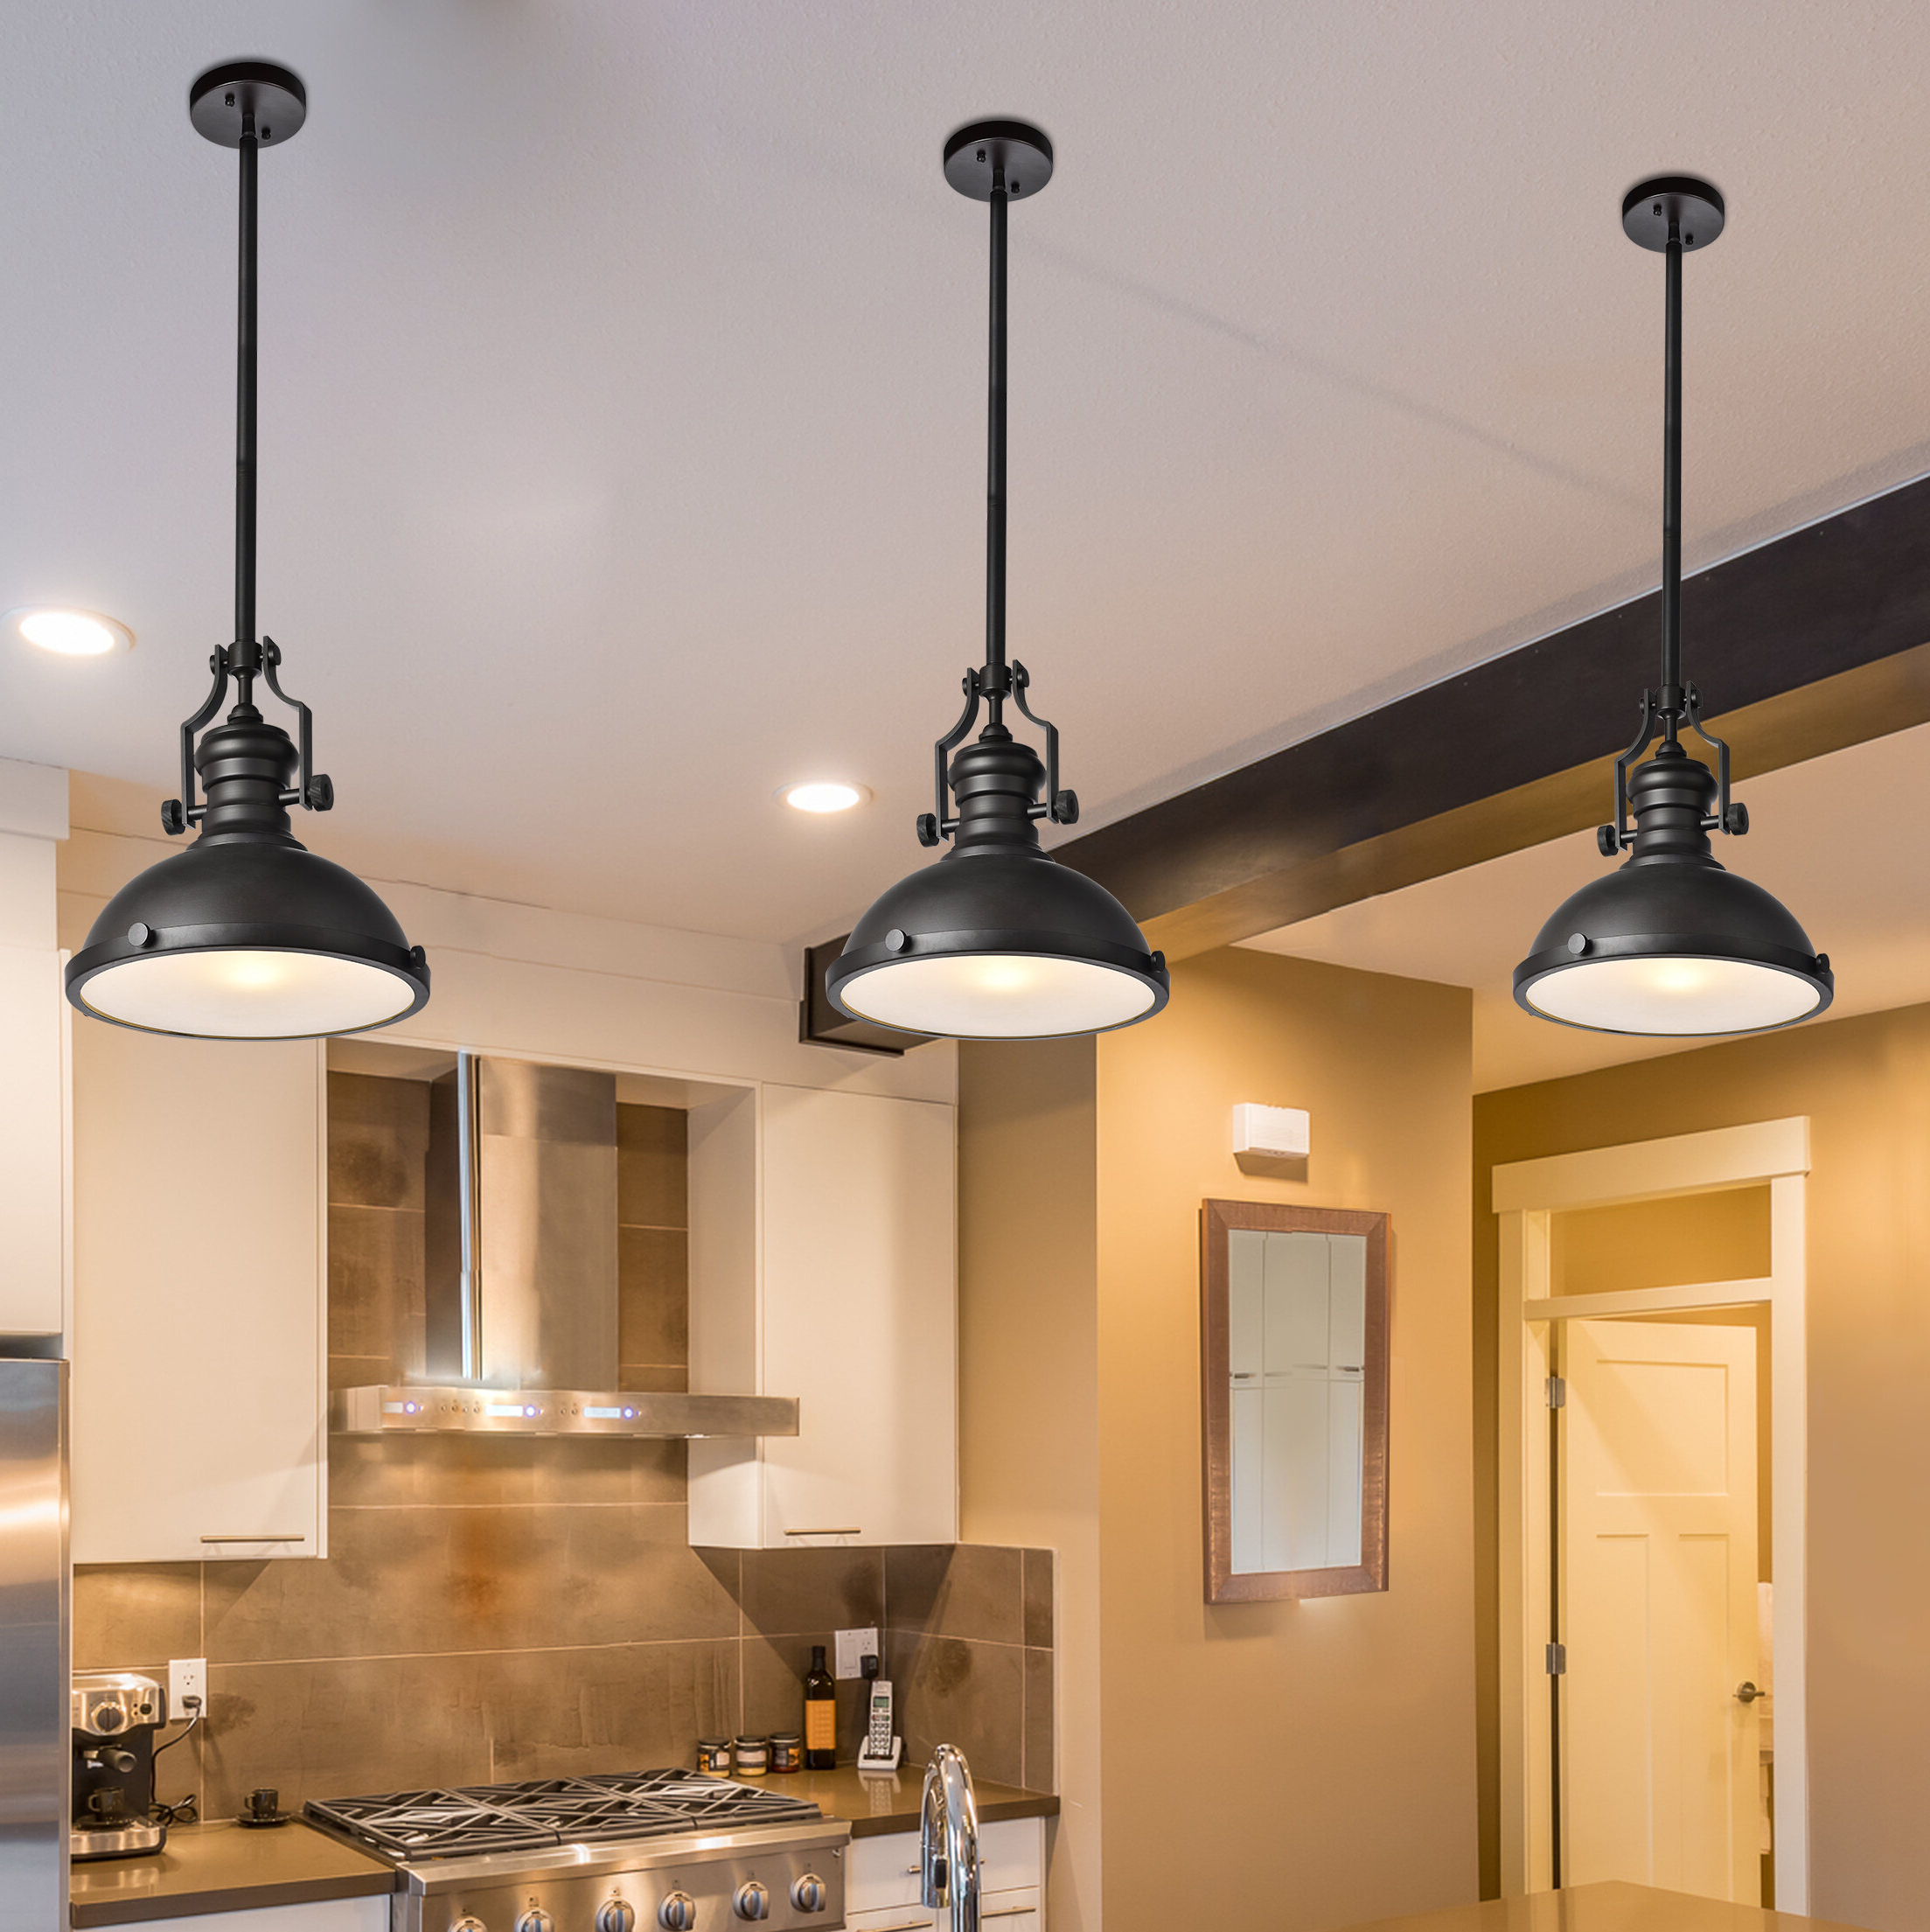 Adriana Black 1 Light Single Dome Pendants Intended For Famous Wheeler 1 Light Single Dome Pendant (View 5 of 20)